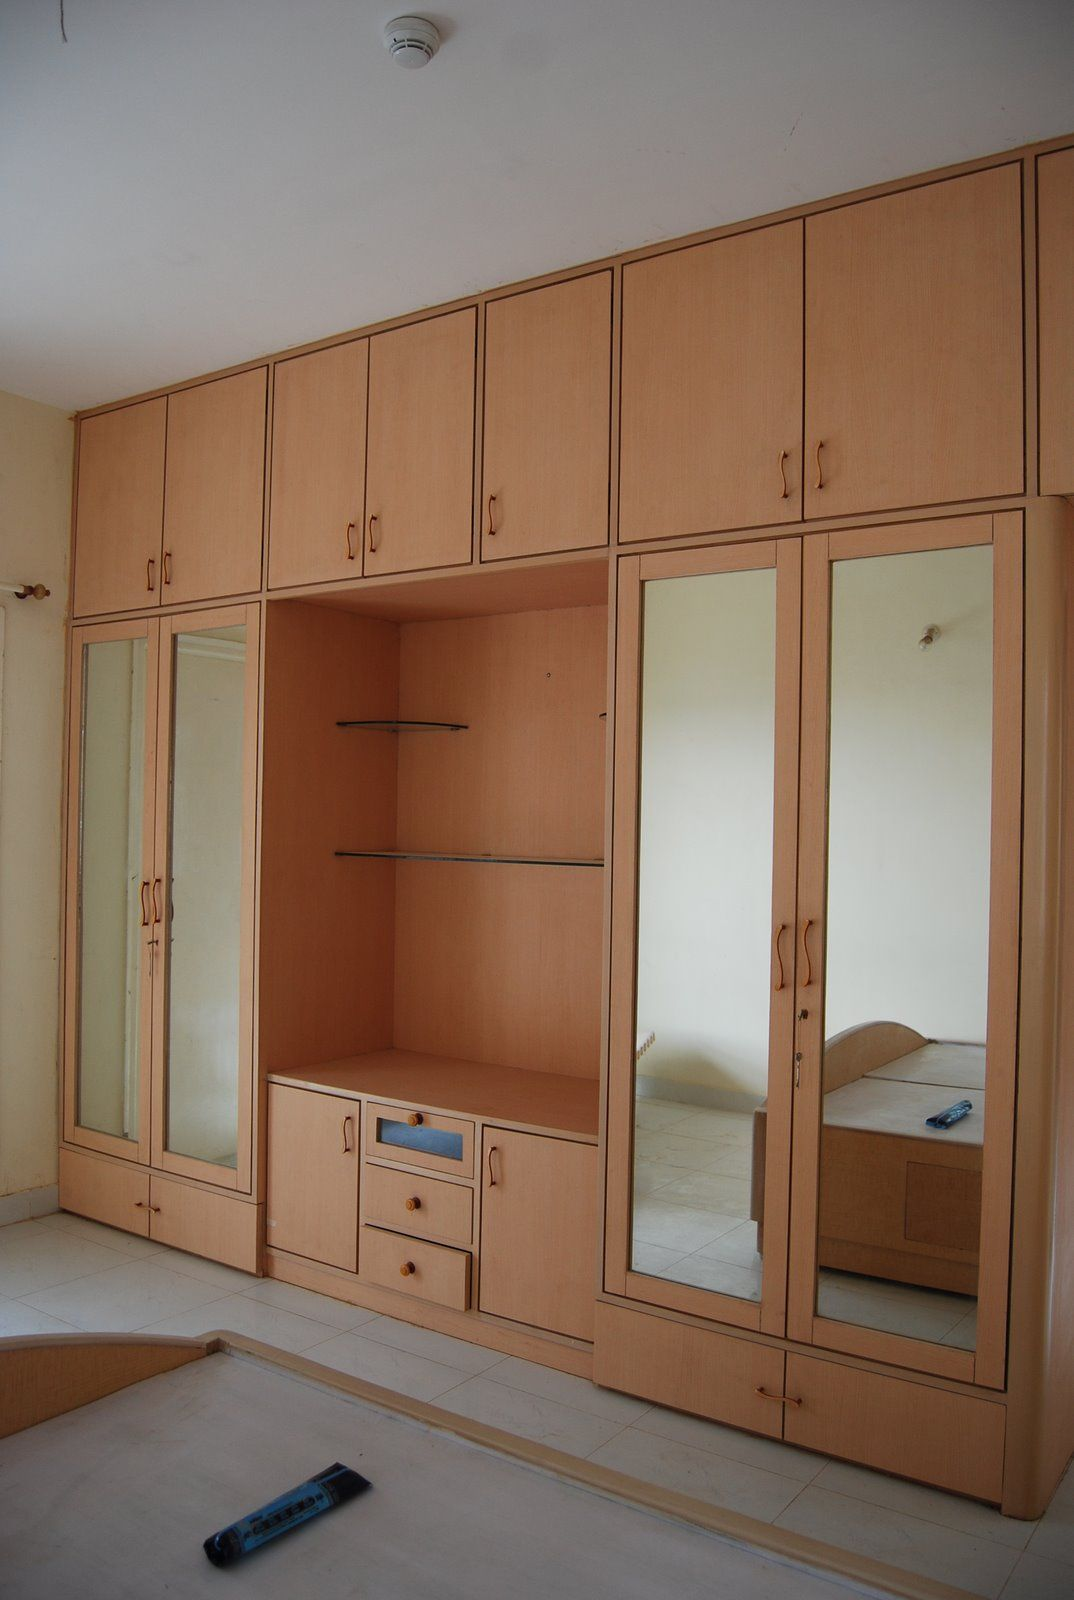 Cabinet Design For Bedroom Bedroom Wardrobe Design Playwood Wadrobe With Cabinets Also